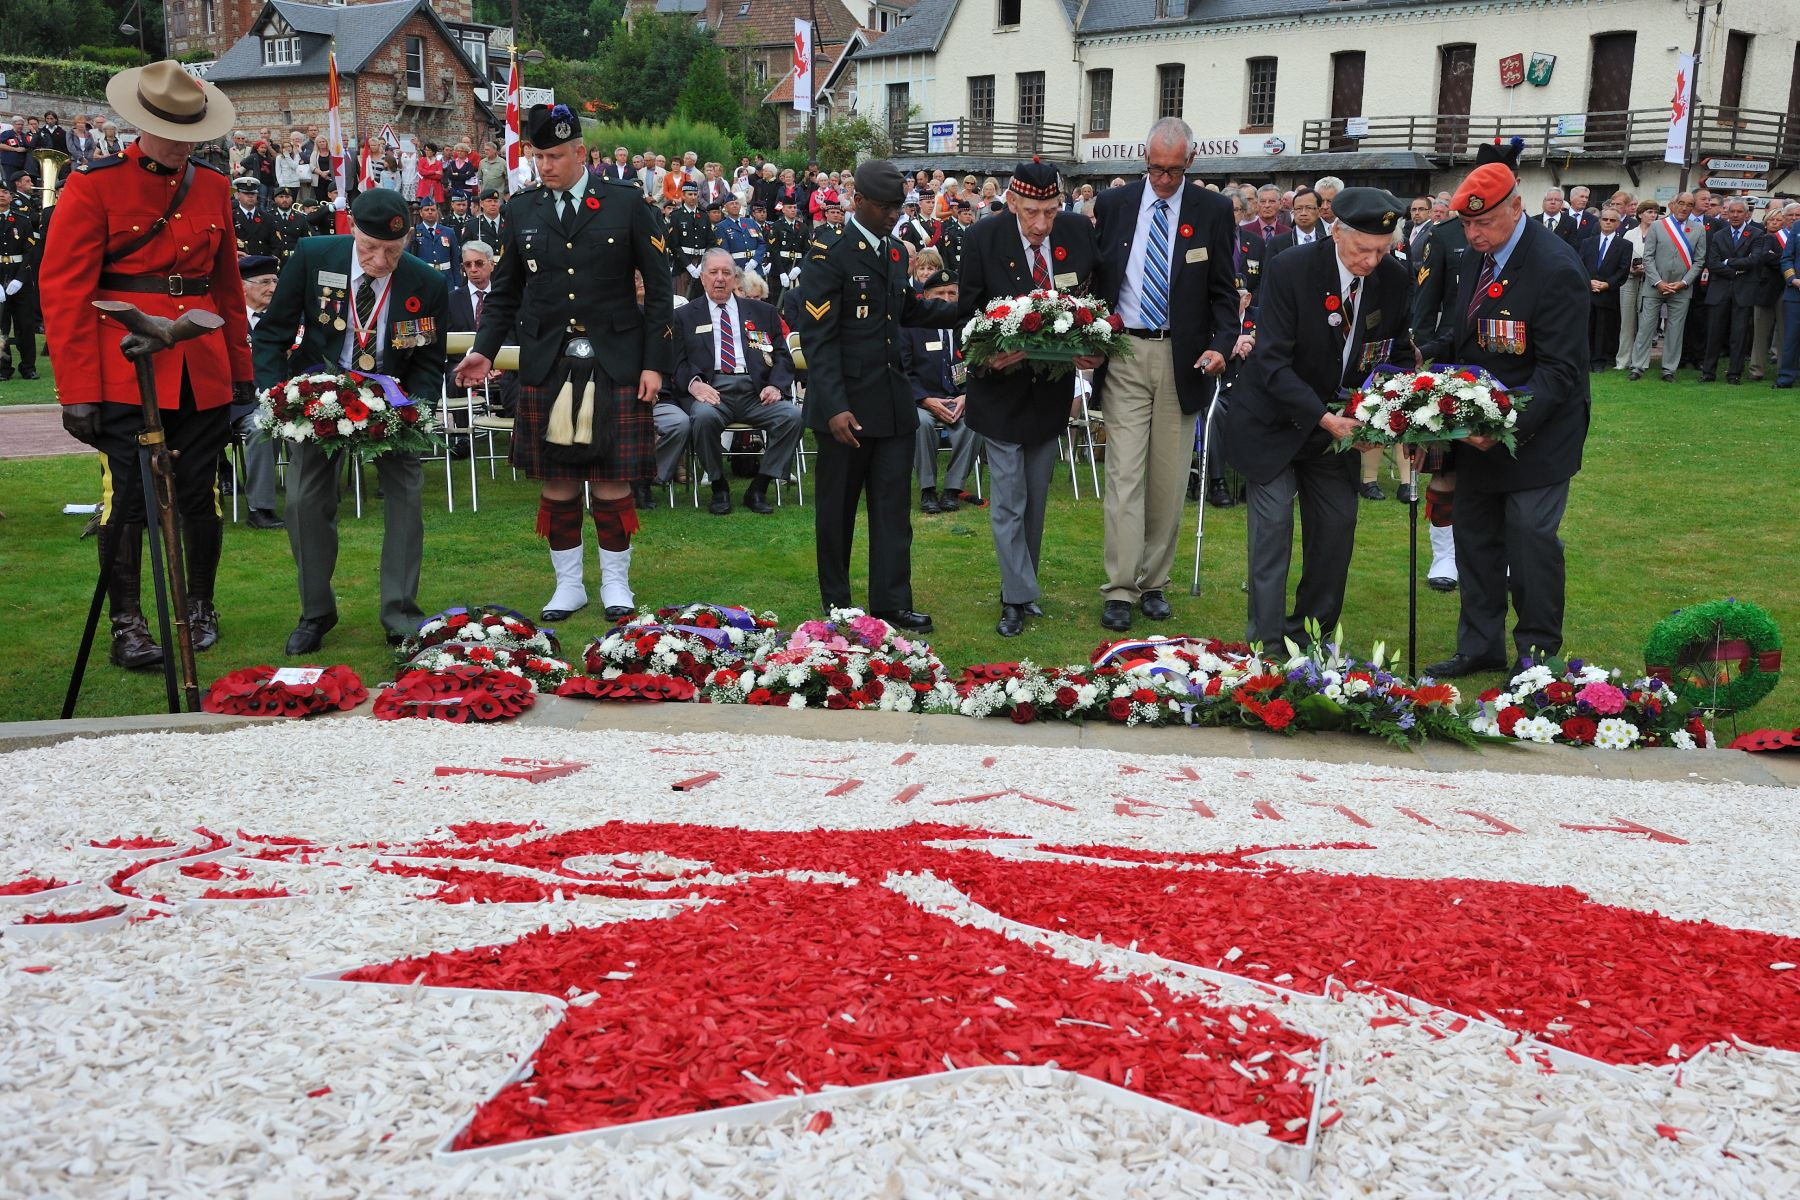 Veterans and other members of the delegation also laid wreaths at the Pourville Memorial.